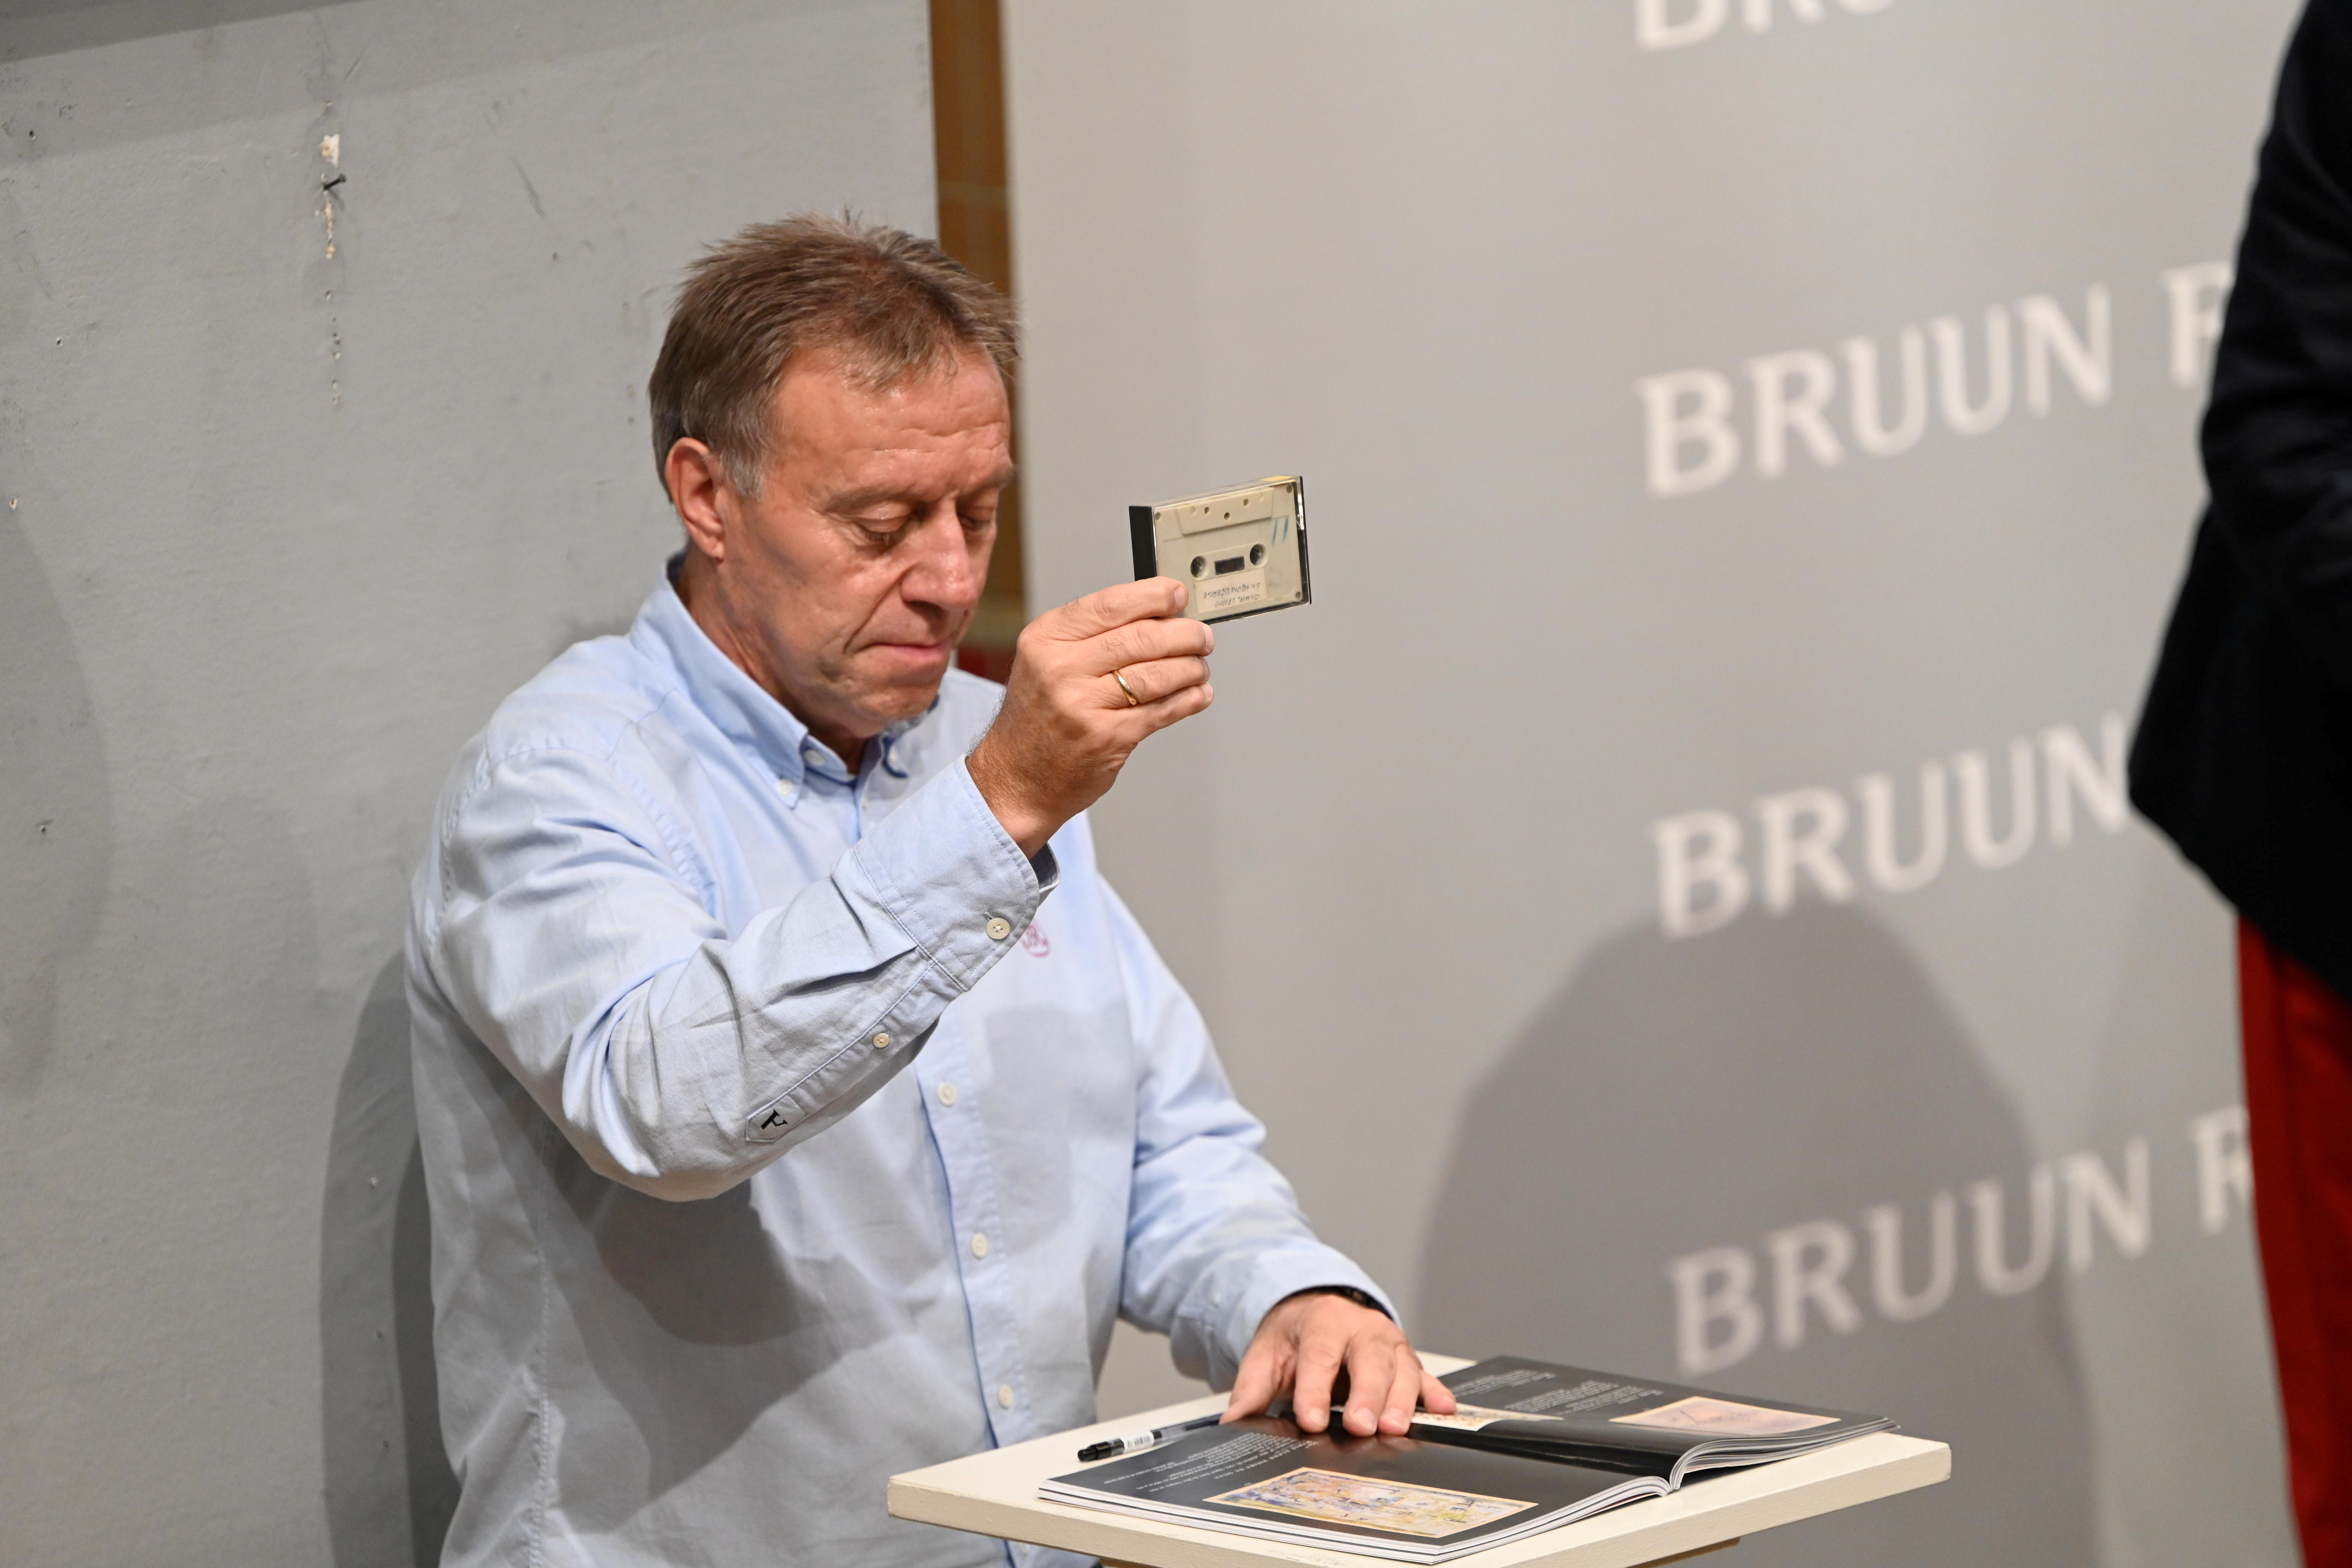 A staff member displays the cassette with the recording of four Danish schoolboys' interviews with John Lennon and Yoko Ono during the couple's winter stay in Thy, Jutland, Denmark in 1970 at Bruun Rasmussen Auction House in Copenhagen, Denmark, September 28, 2021. The auction includes the interviews and song